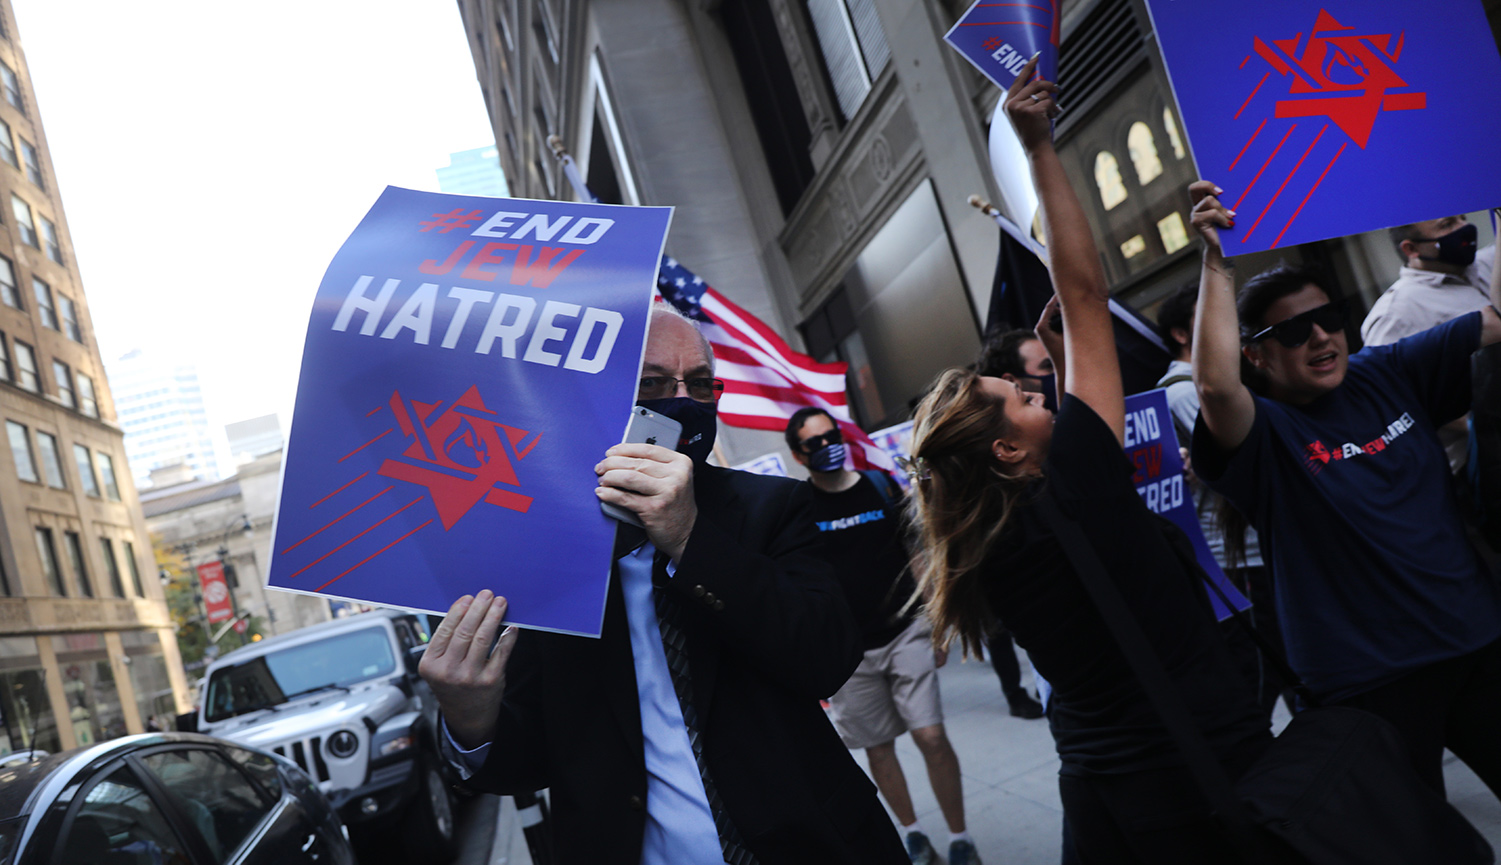 Protesters rally in Manhattan on October 15, 2020. Spencer Platt/Getty Images.